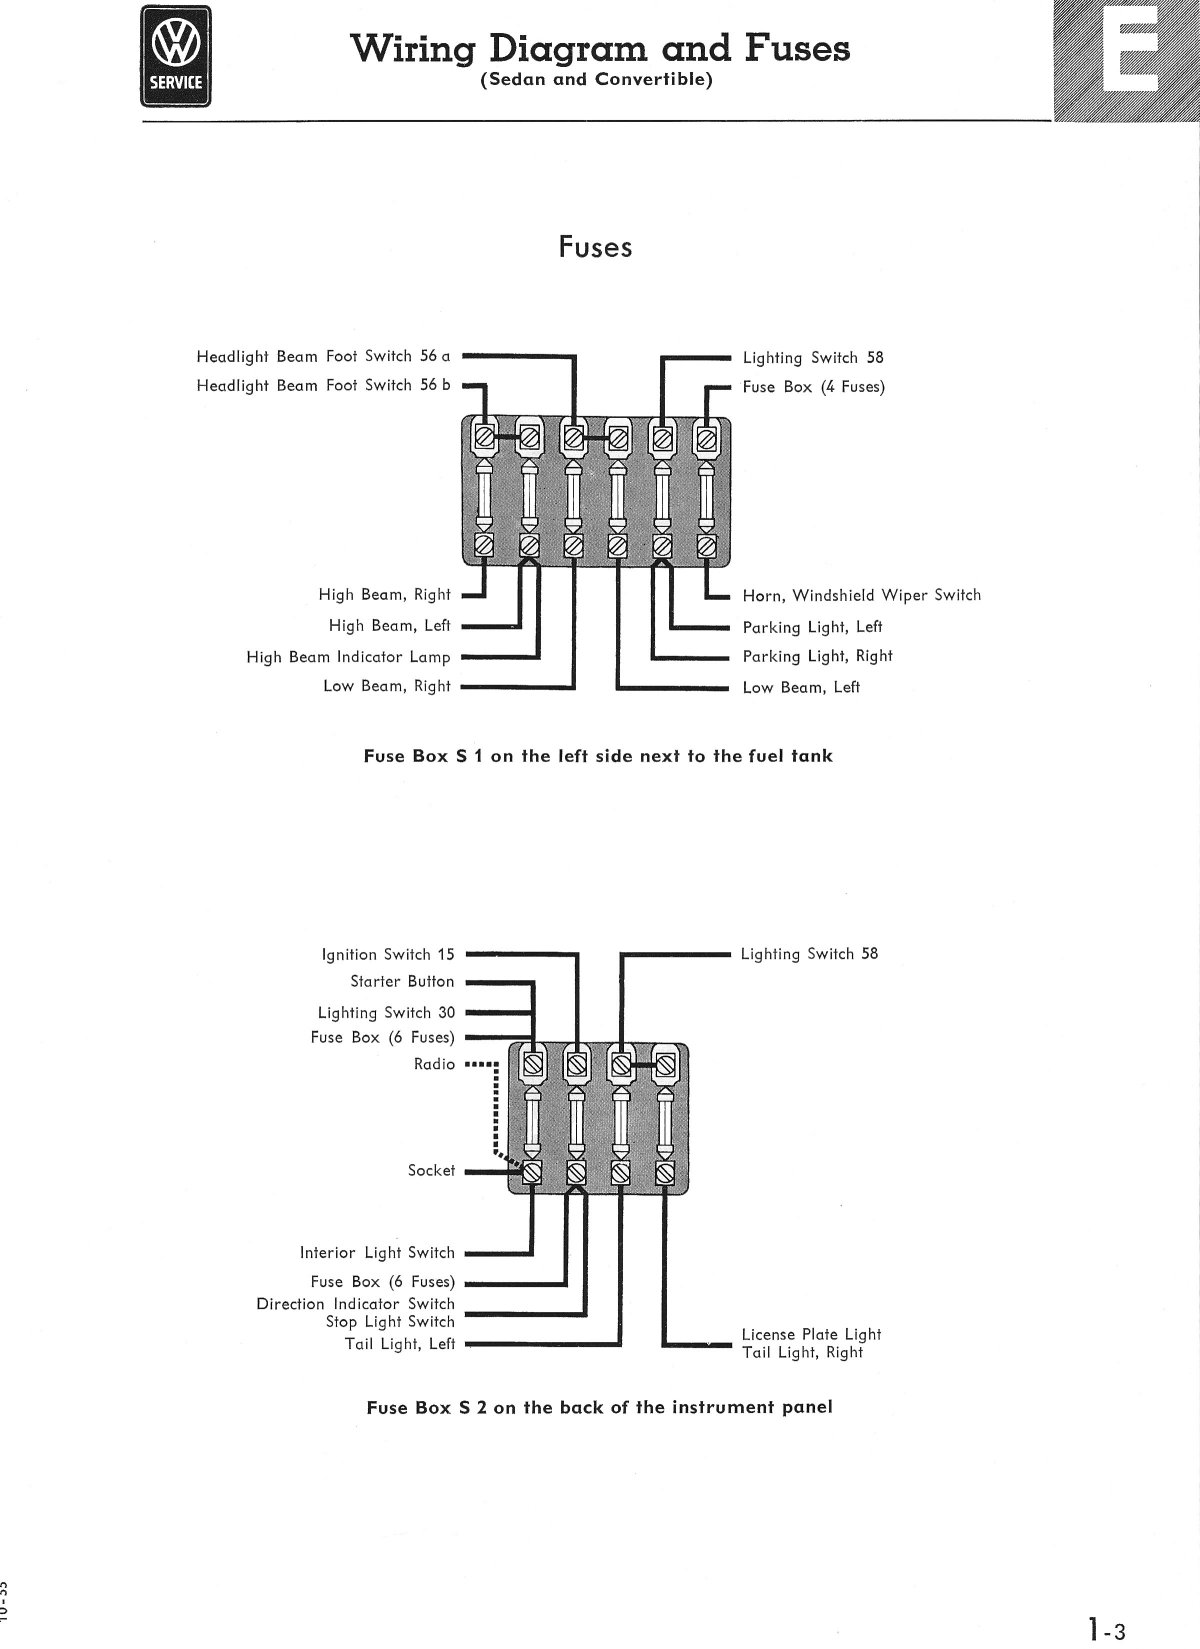 2002 Ford Windstar Wiring Diagrams Simple Guide About Diagram Fuse Thesamba Com Type 1 Plug Wire